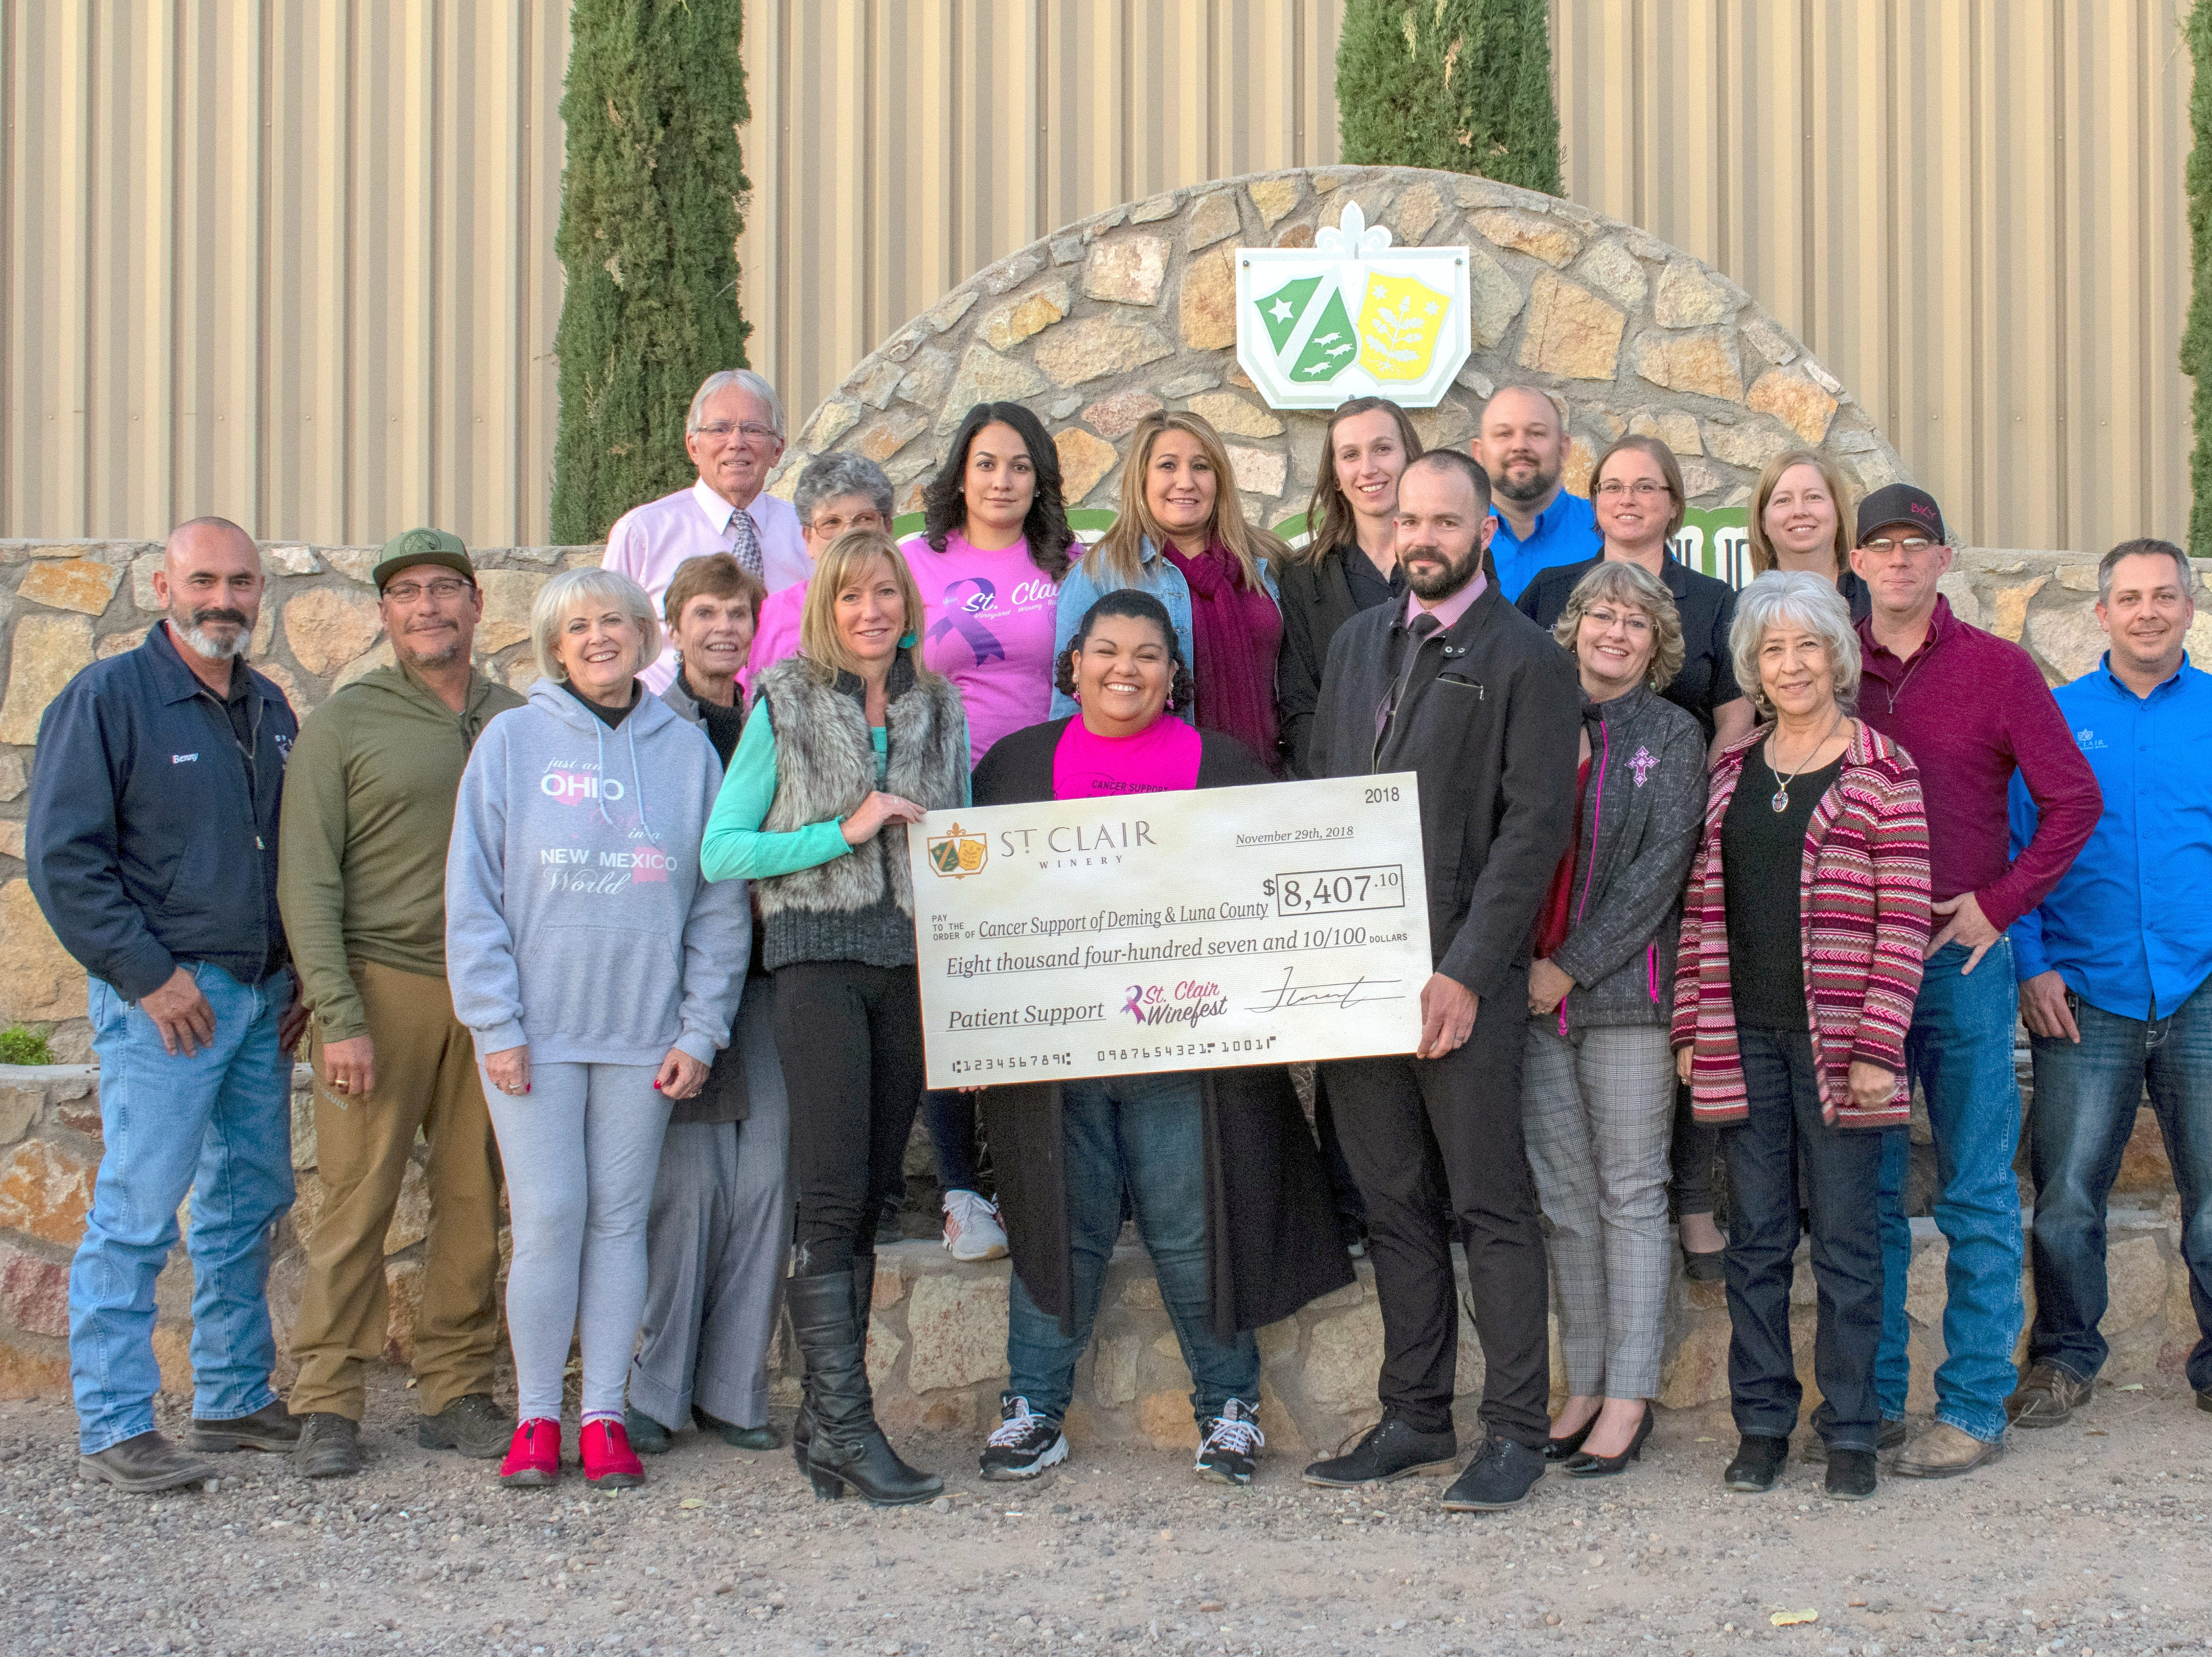 This year's Winefest donation was $8,407.10, which has been credited to both attendance and silent auction donations collected from local businesses.